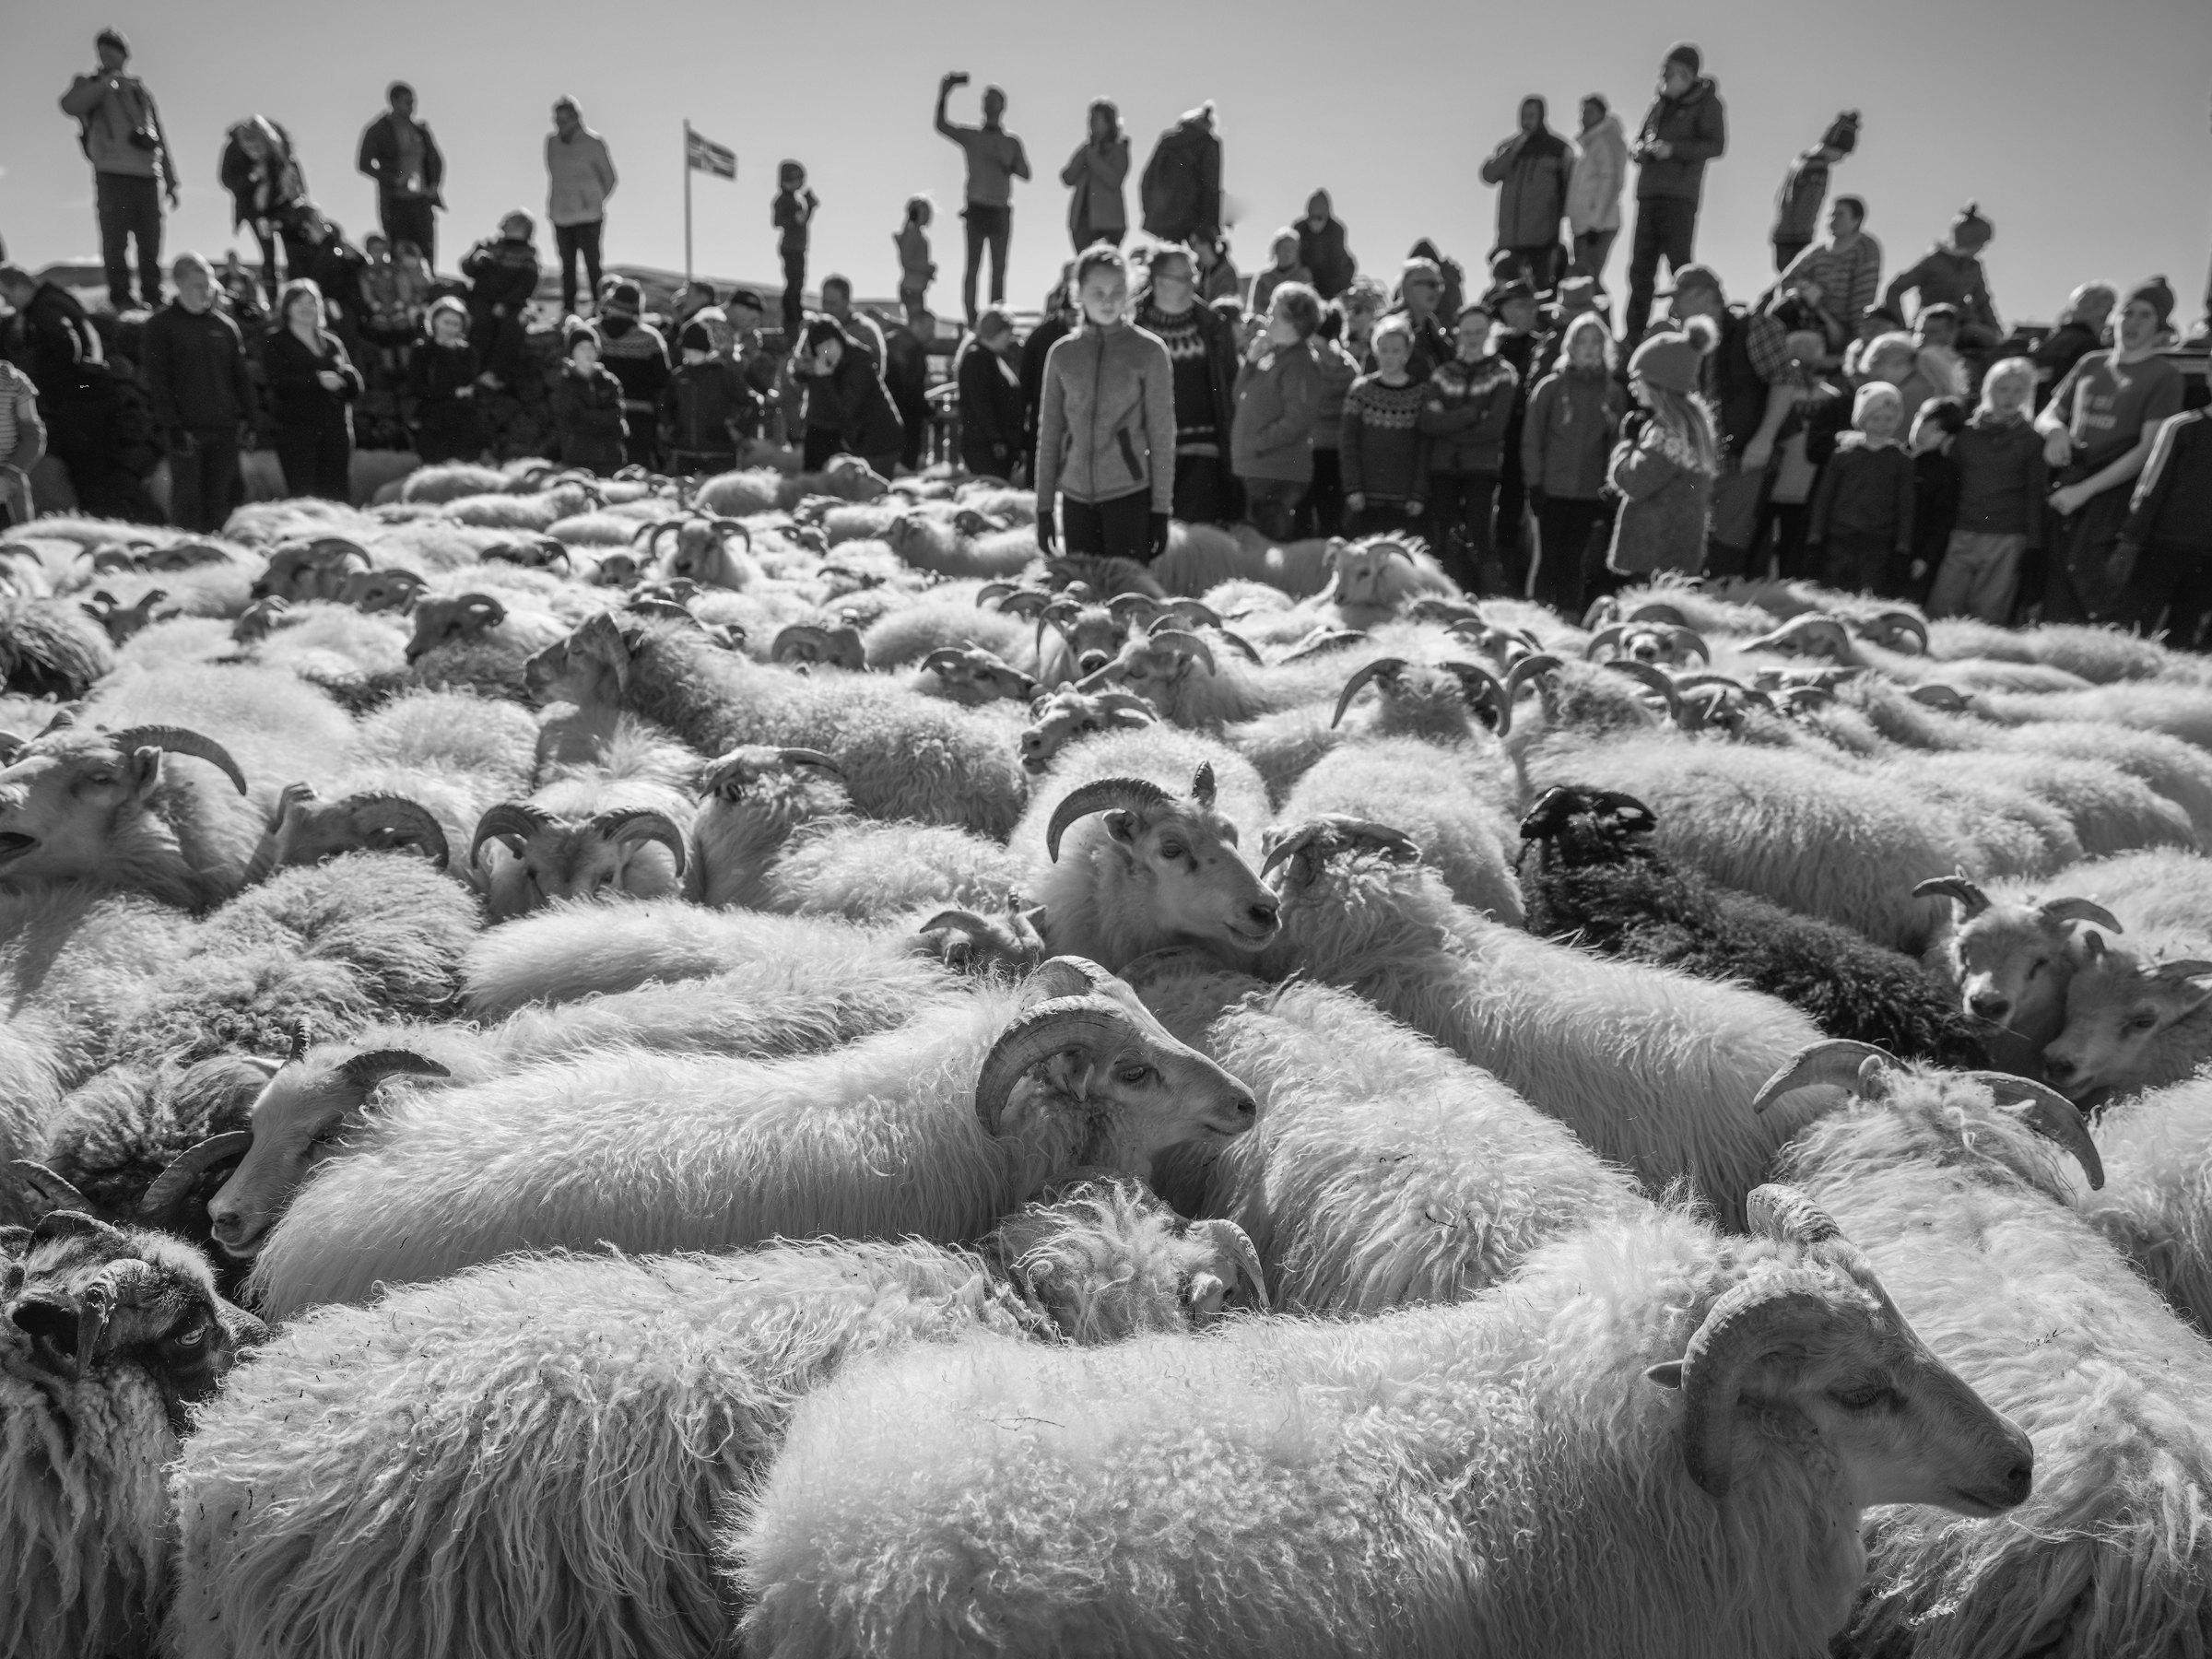 It is like looking for a needle in a haystack as 1500 sheep move around the inner ring.